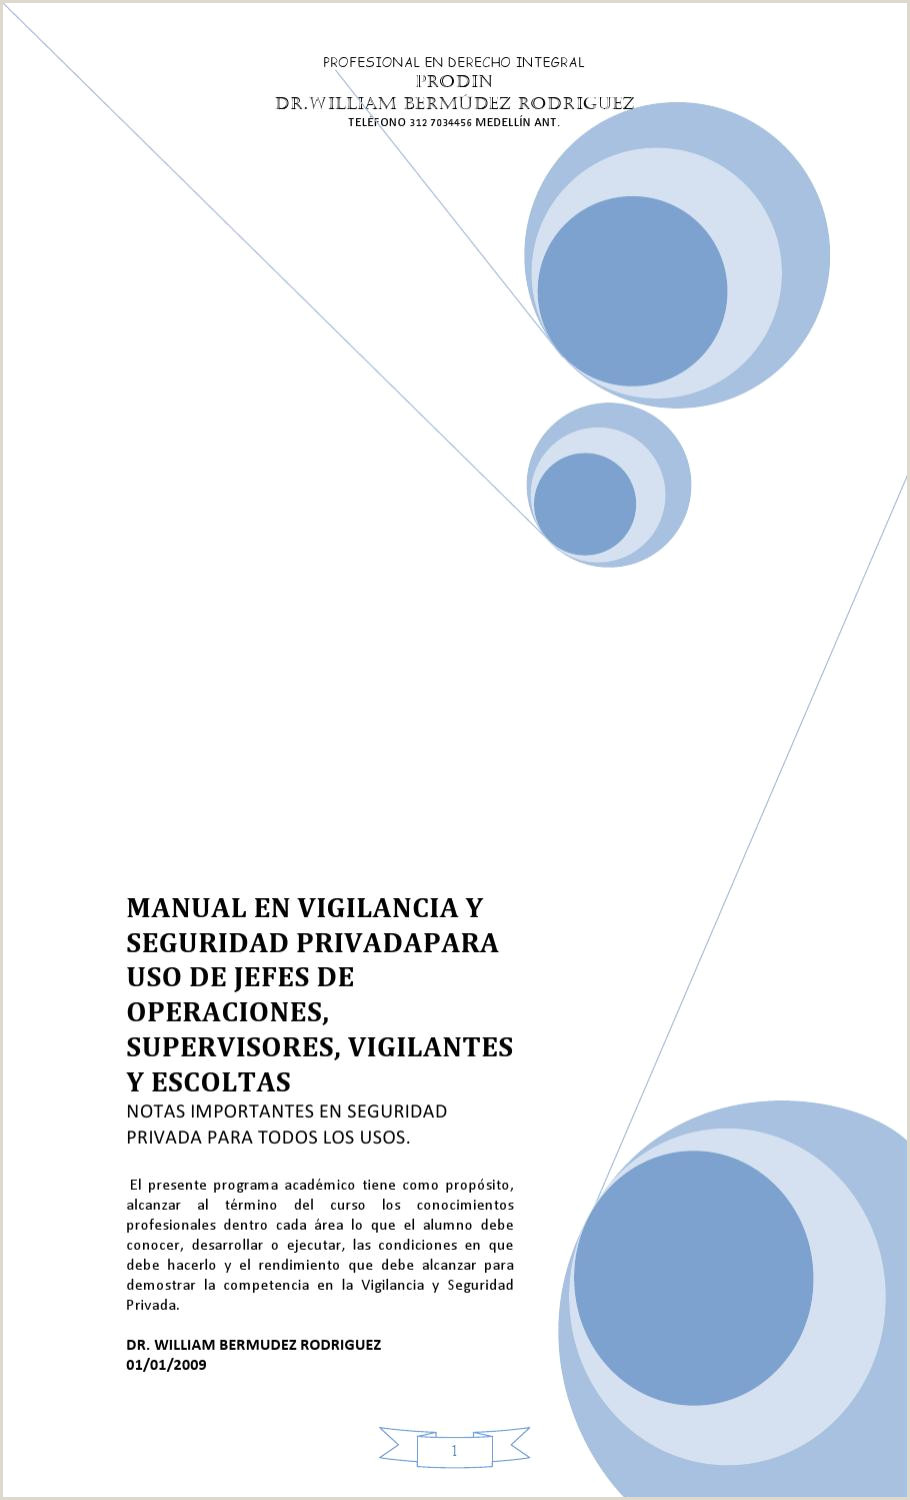 Formato Hoja De Vida Minerva 100 Para Diligenciar Manual De Vigilancia Y Seguridad Privada by William Bermudez